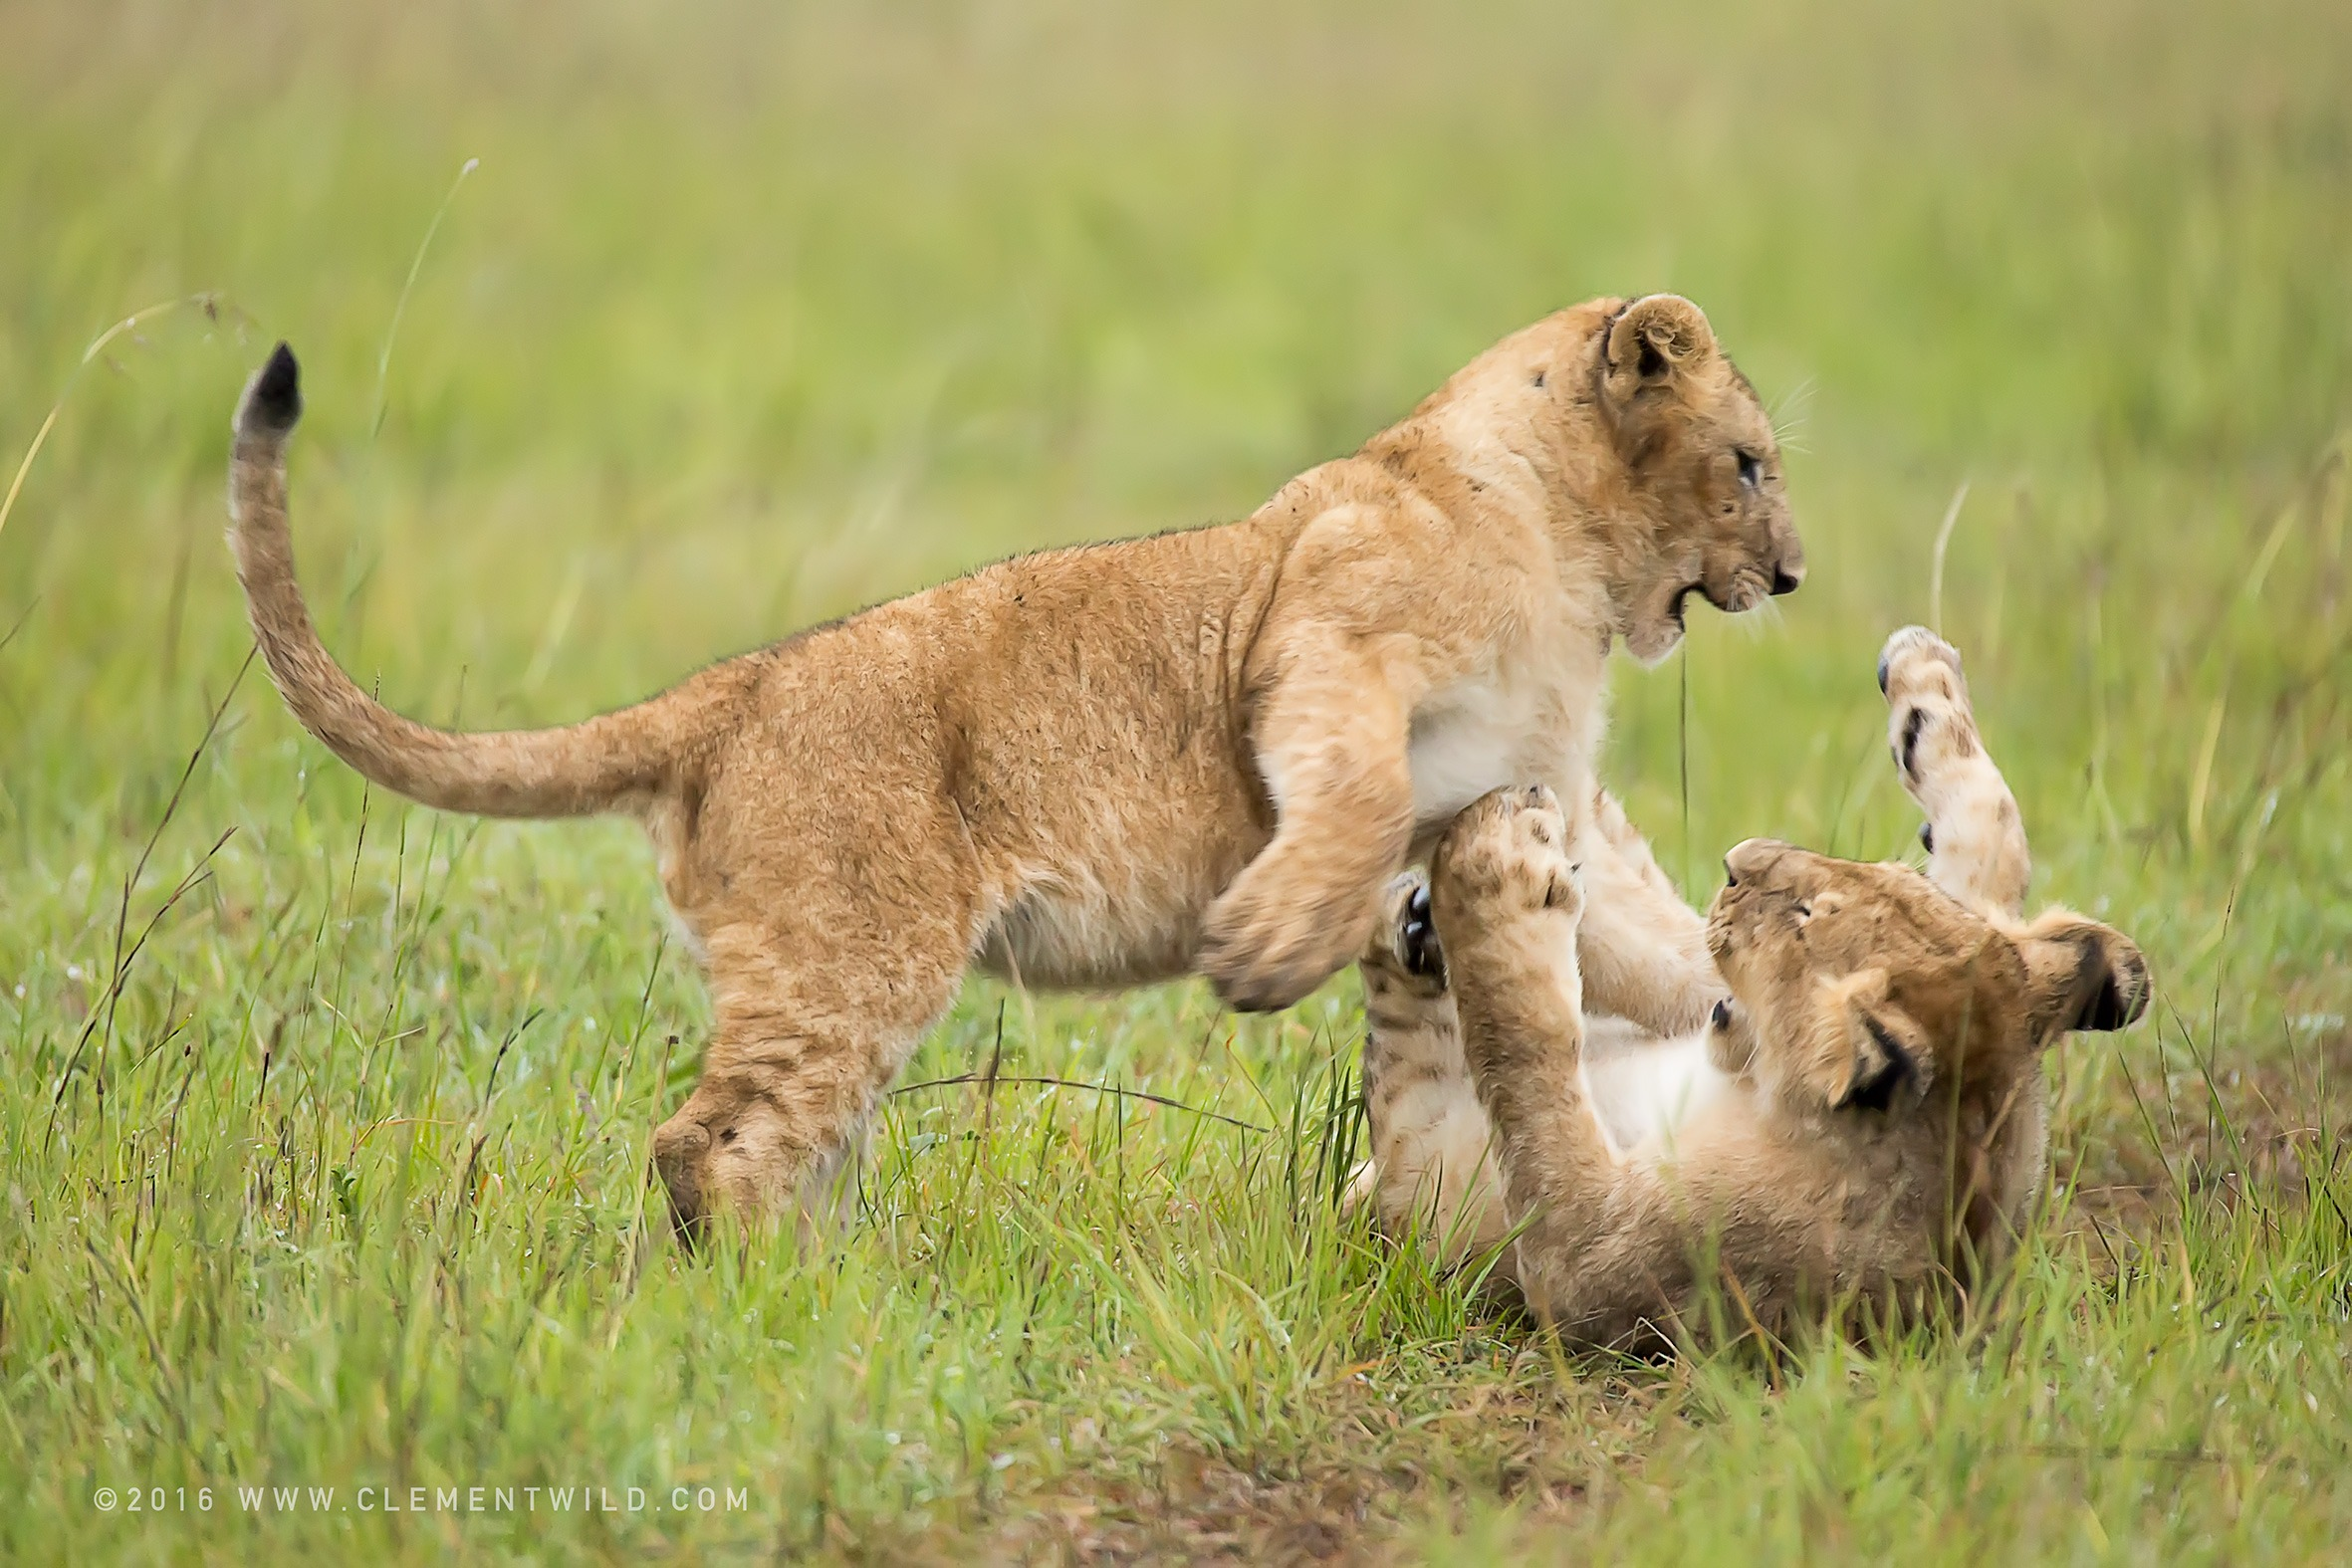 Big Cats, Lioness, Cubs, Wildlife Photography, Photographic Safaris, Clement Wild, Masai Mara